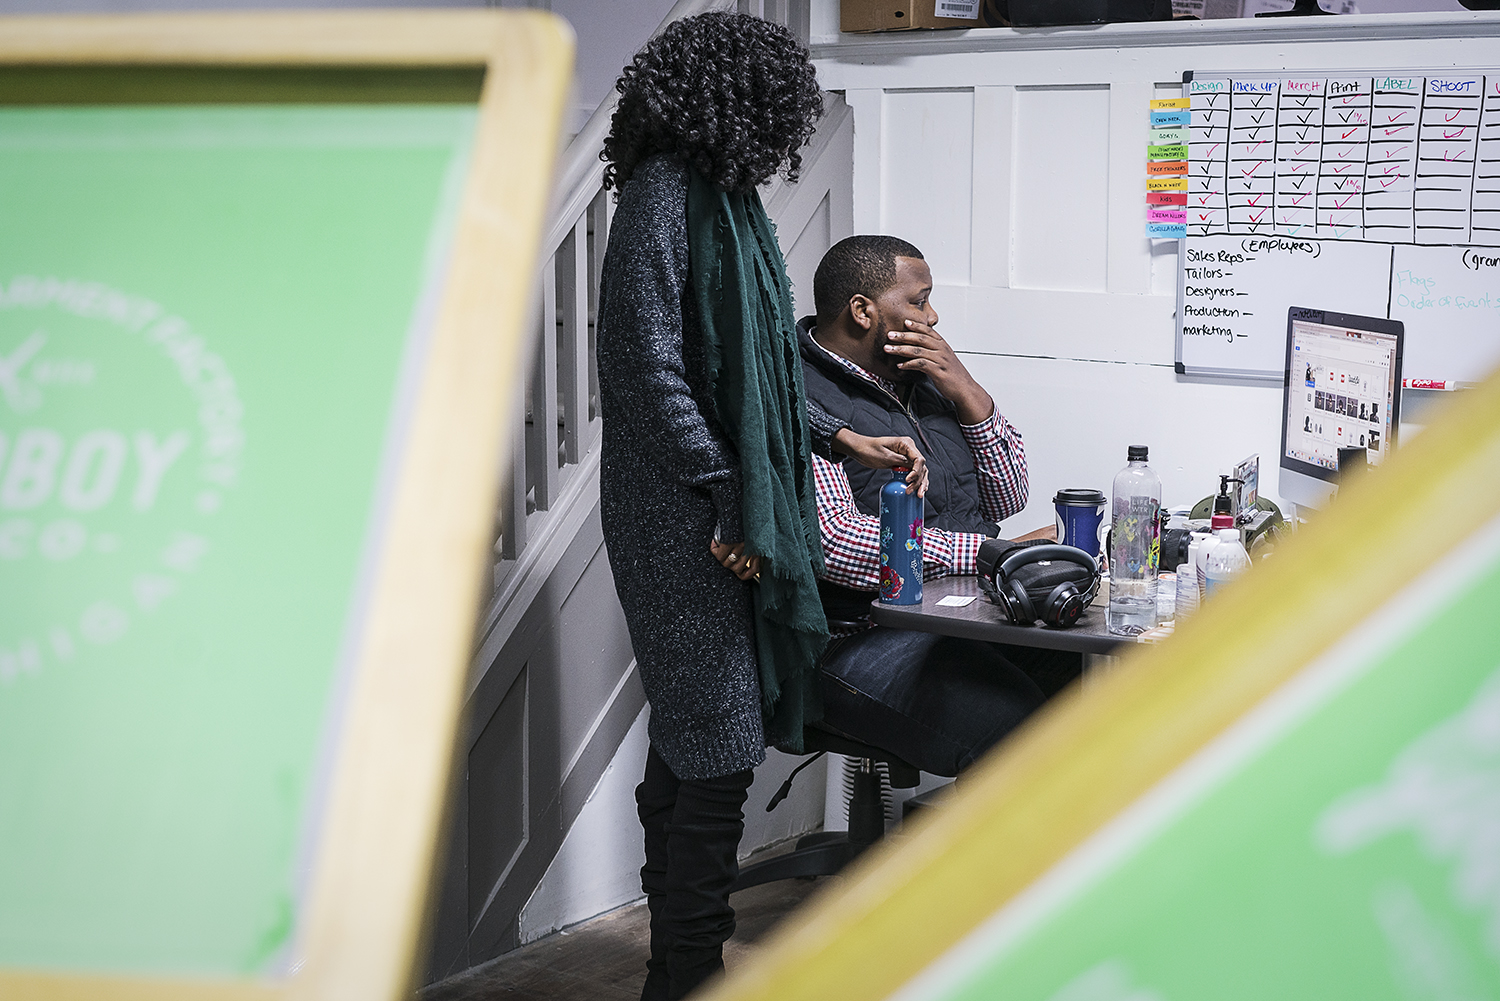 Flint, MI - Monday, November 13, 2017: GoodBoy Clothing creator and owner Oaklin Mixon, 34, of Flint, right and public relations specialist Lydia Seale, 23, of Flint look at Mixon's monitor as they plan social media and web releases of visuals in the production area of the new GoodBoy Clothing storefront.